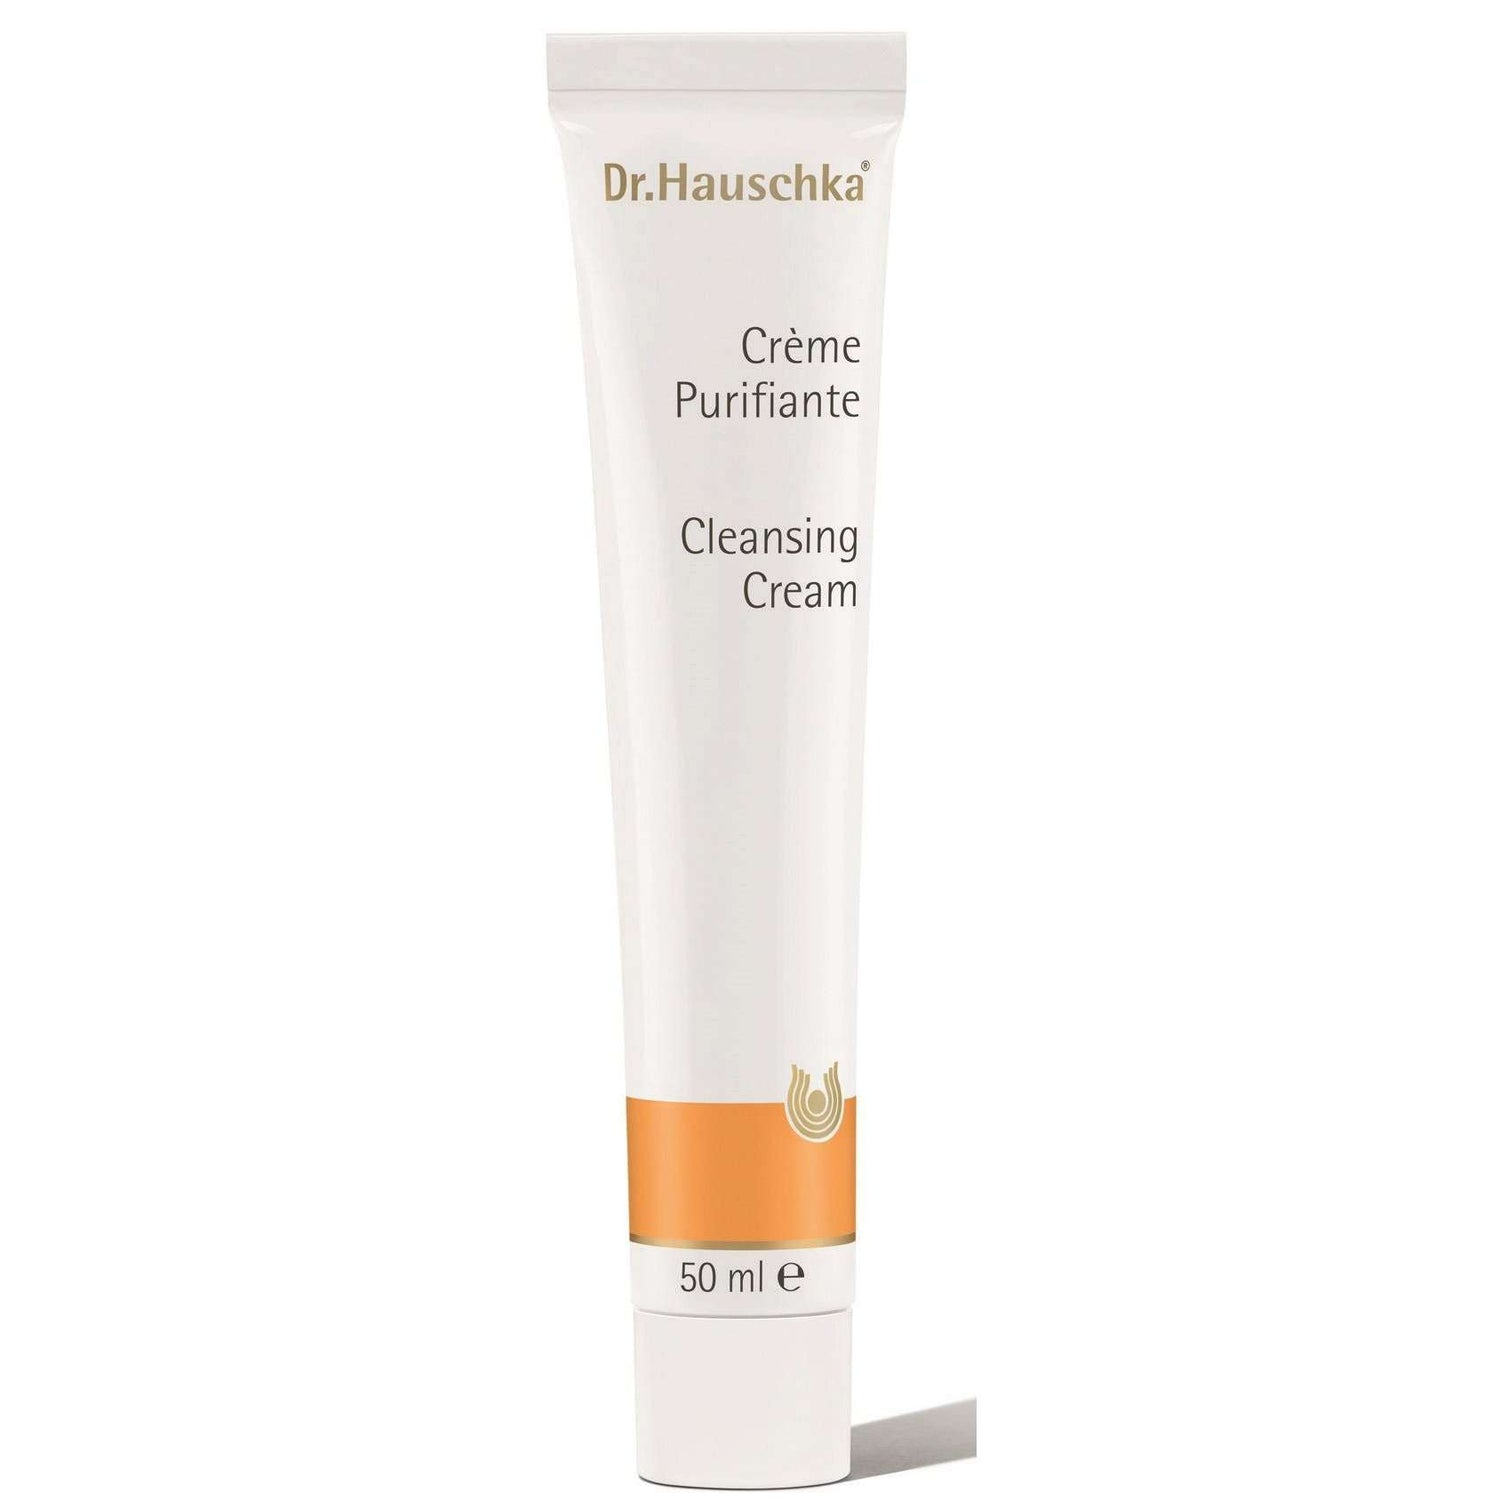 Facial Cleansing Cream (50ml) - Dr. Hauschka